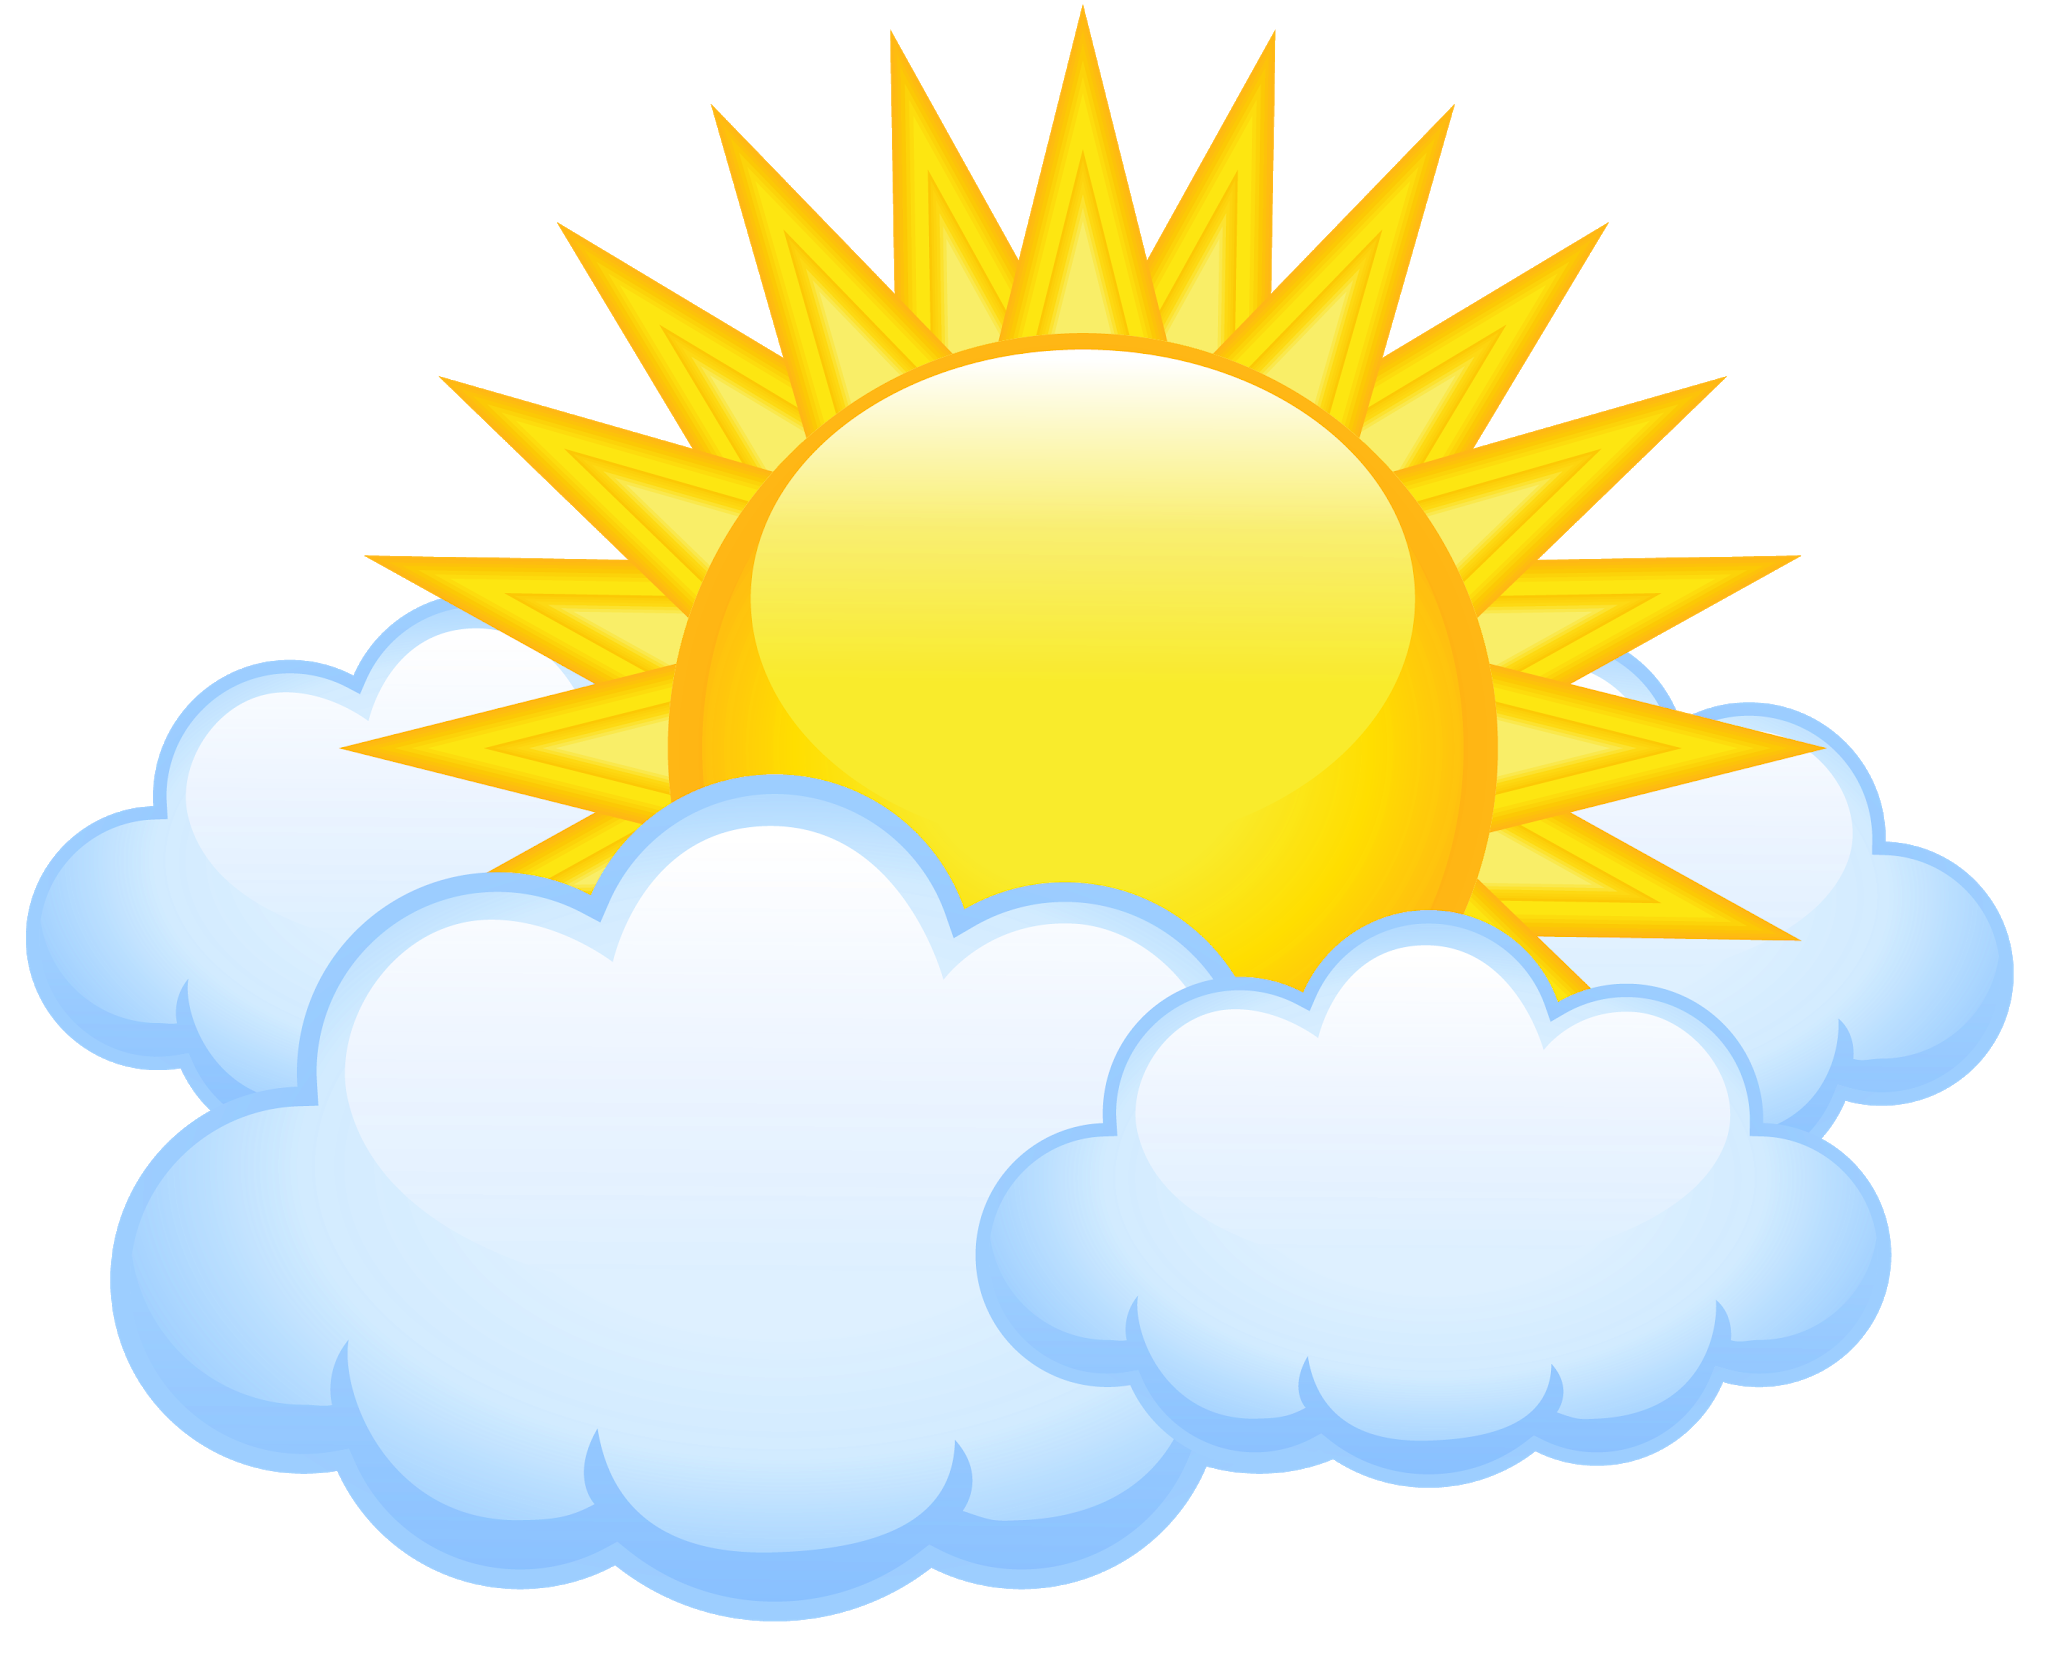 Cartoon clouds sunshine and. Pin by pngsector on